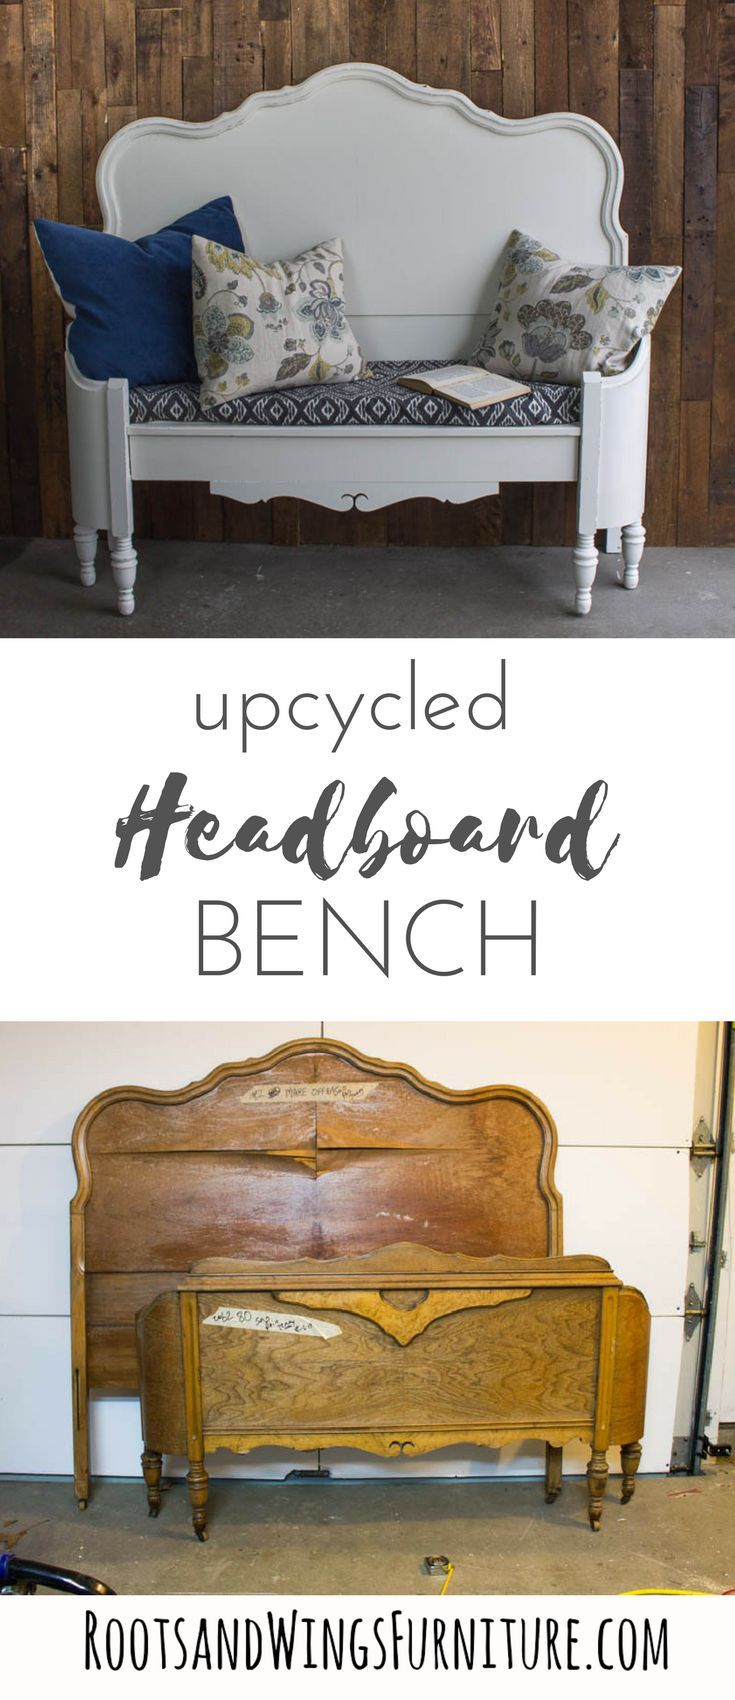 Upcycled Headboard Bench  Roots Learn how to make a headboard bench Repurposing an old headboard View the tutorial here